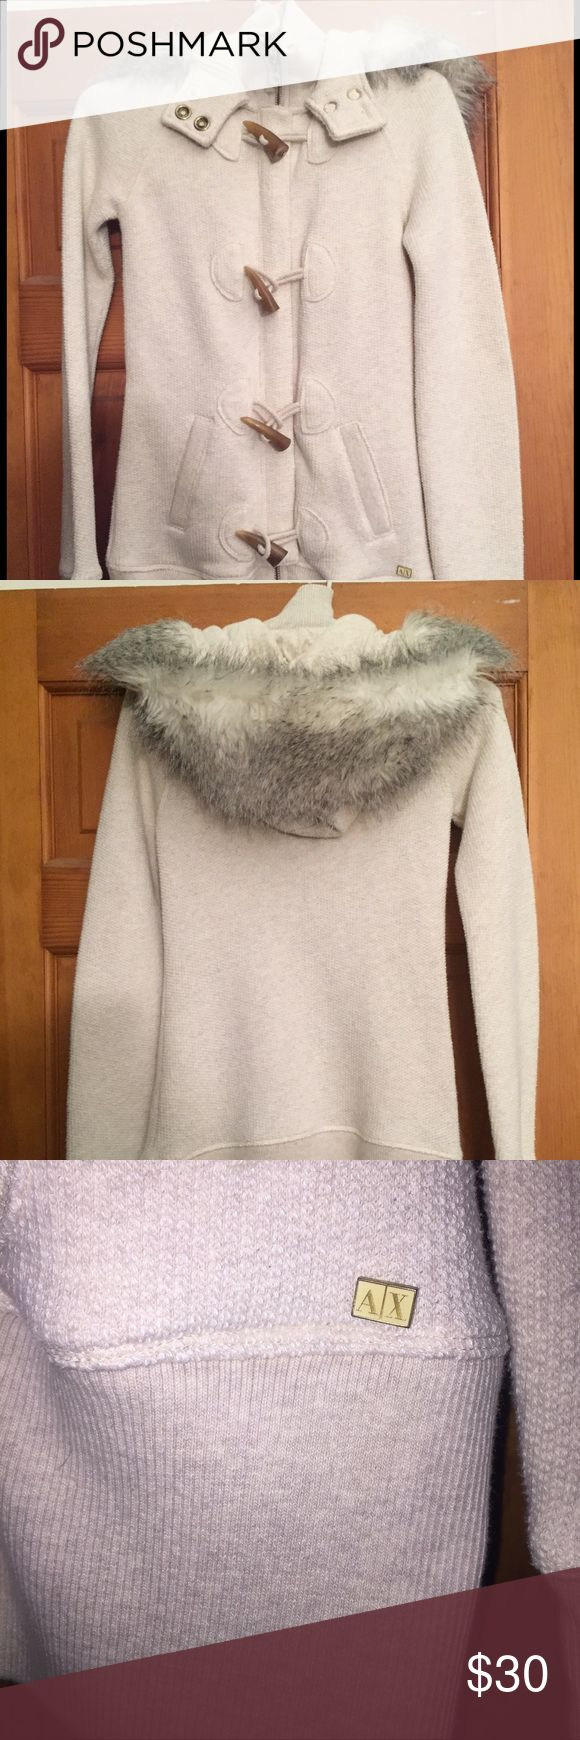 Armani Exchange sweater/jacket Off-white long sleeve, zip-up sweater with toggle closures over zipper and luxurious faux fur hood. Perfect with leggings or jeans. Very comfortable and warm! A/X Armani Exchange Sweaters